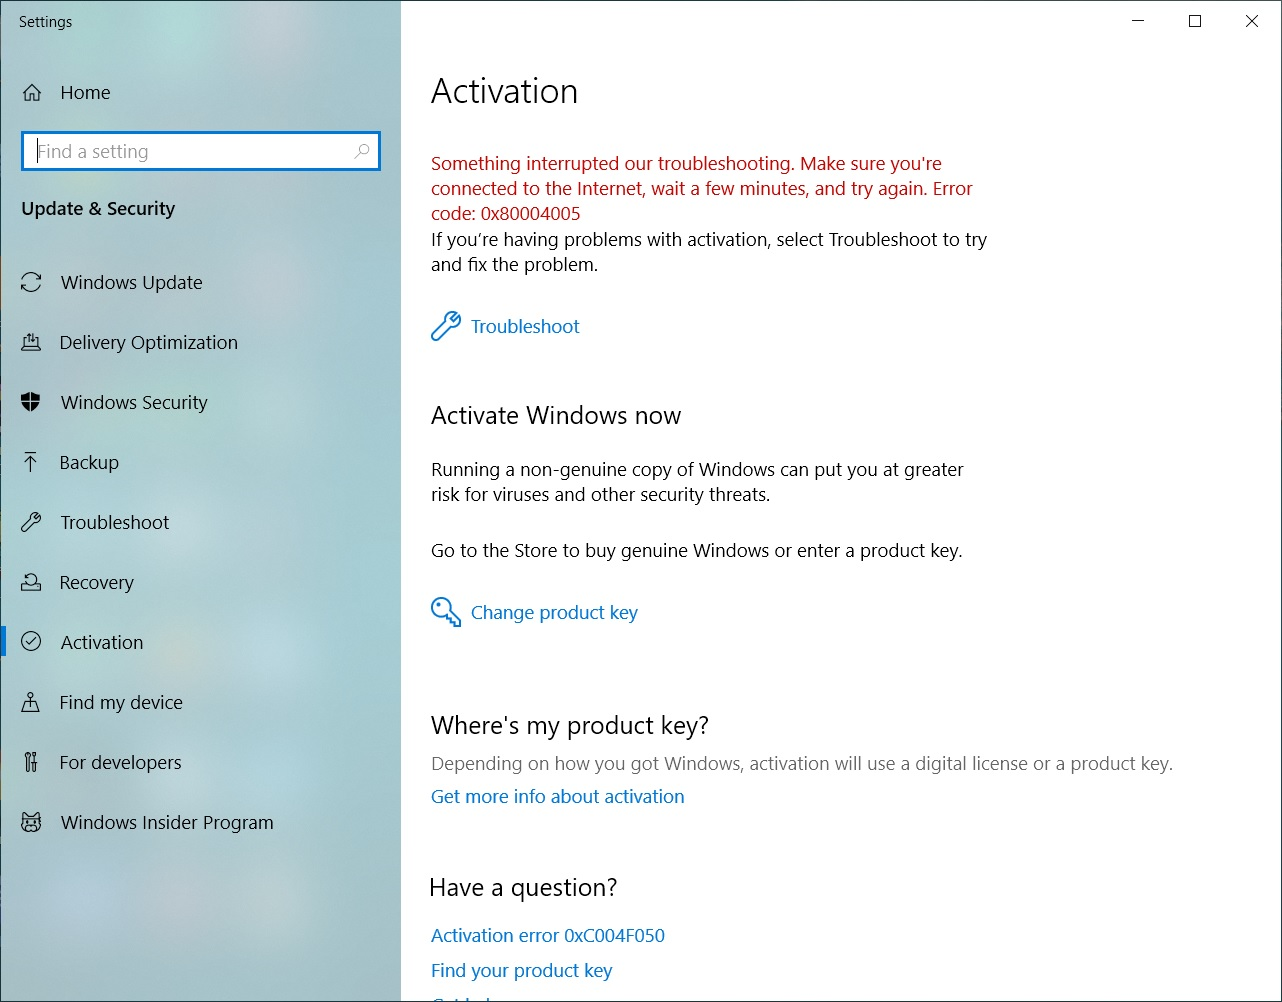 Windows 10 Home 1903 Activation Issues 8aa0ed41-1347-4d48-944b-e503fef30a25?upload=true.jpg